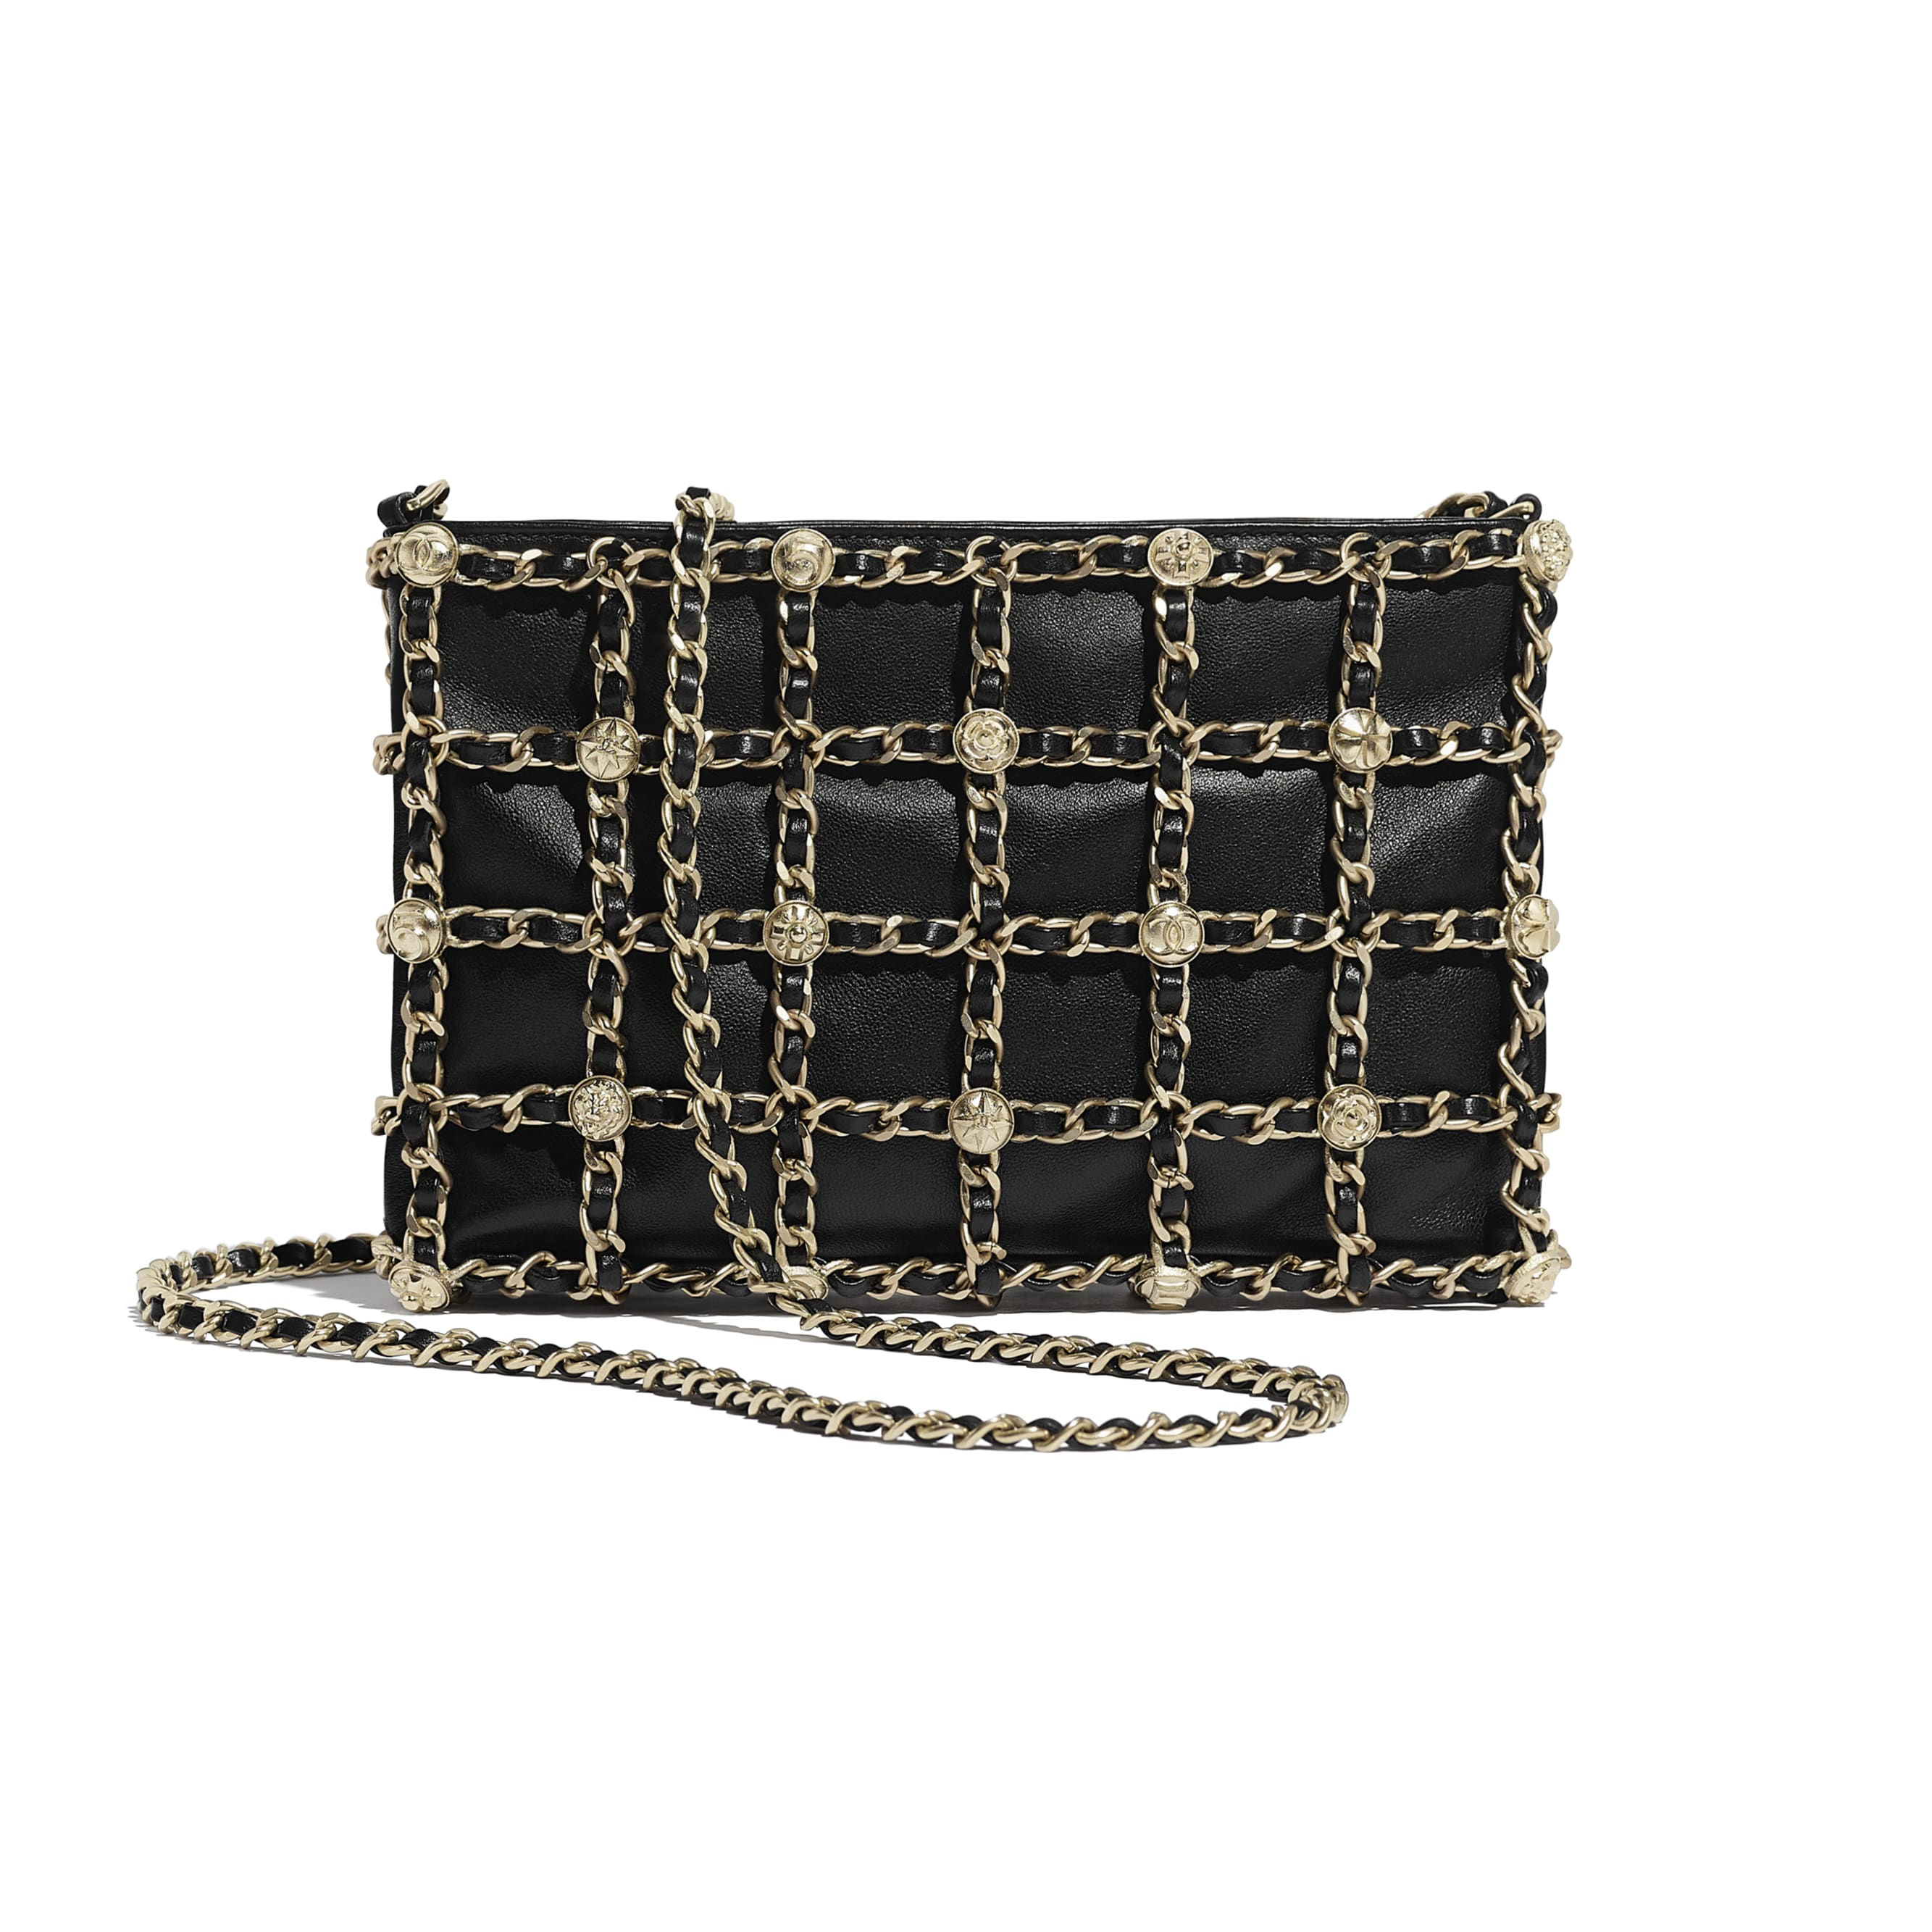 Clutch - Black - Lambskin, Studs & Gold-Tone Metal - CHANEL - Alternative view - see standard sized version